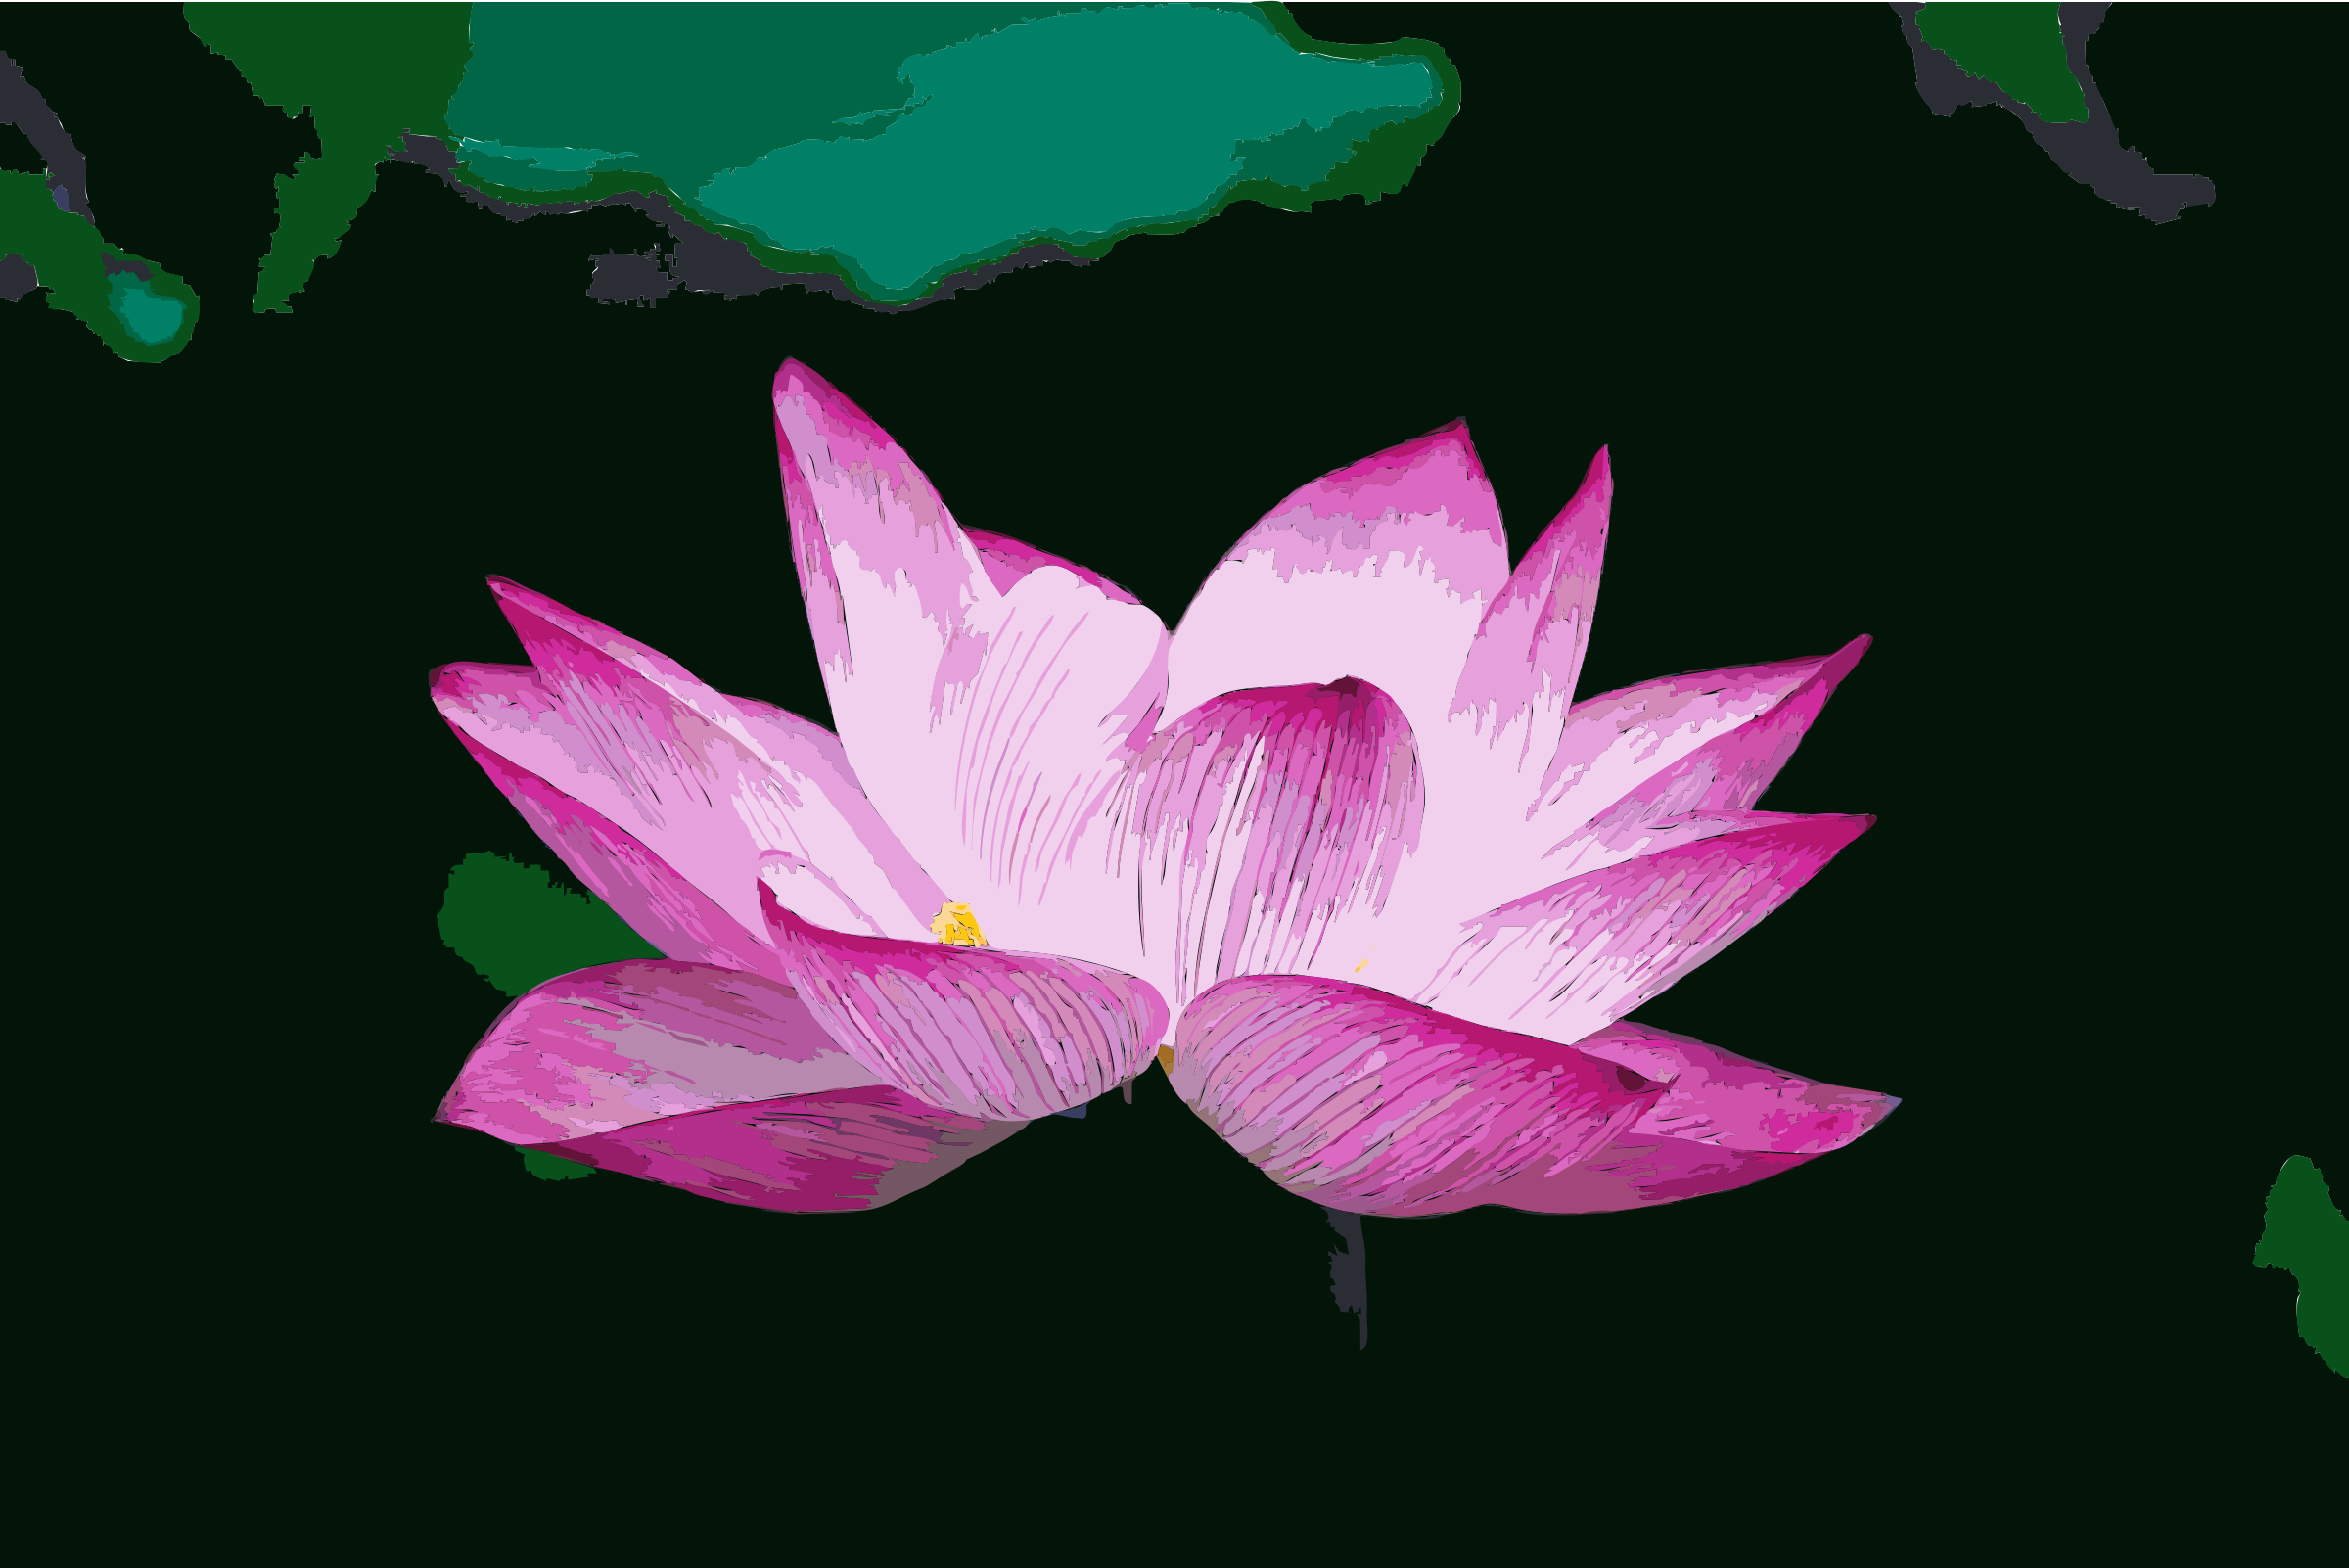 Lotus flower (978659) by 5mvcfy+25epcyzr54tu0